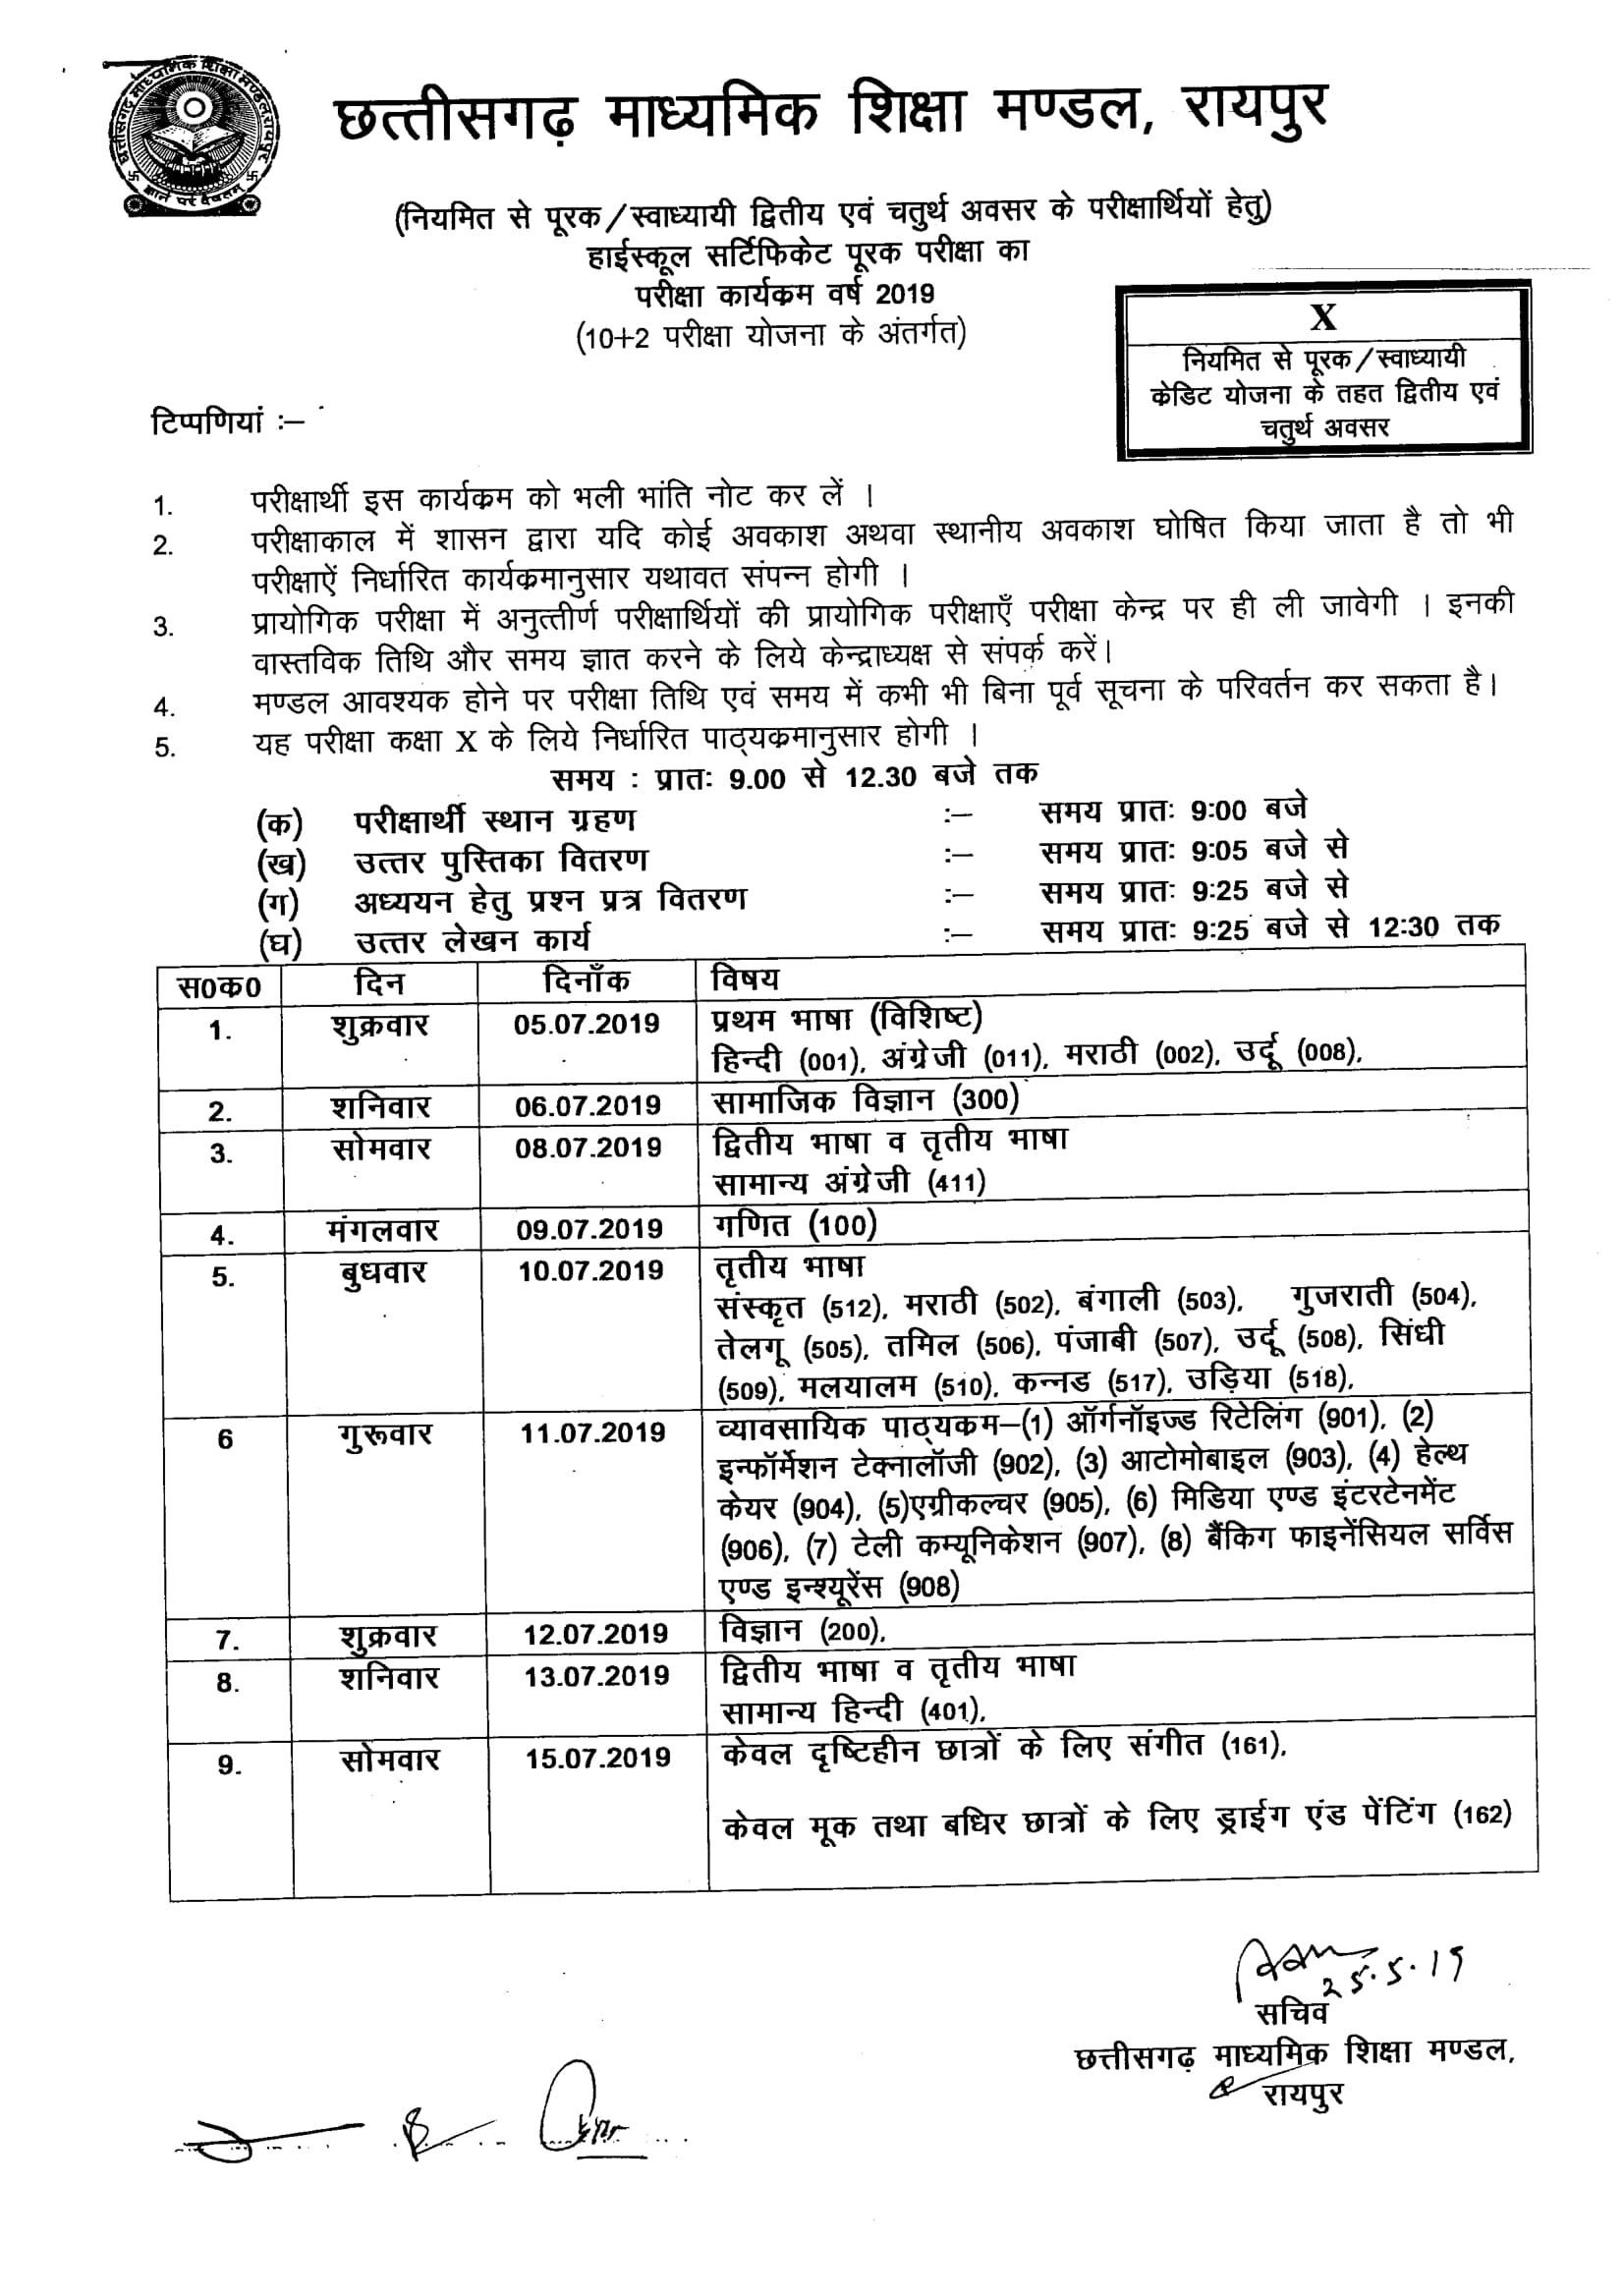 CGBSE 10th Time Table PDF 2019 (Supplementary) | Download CG